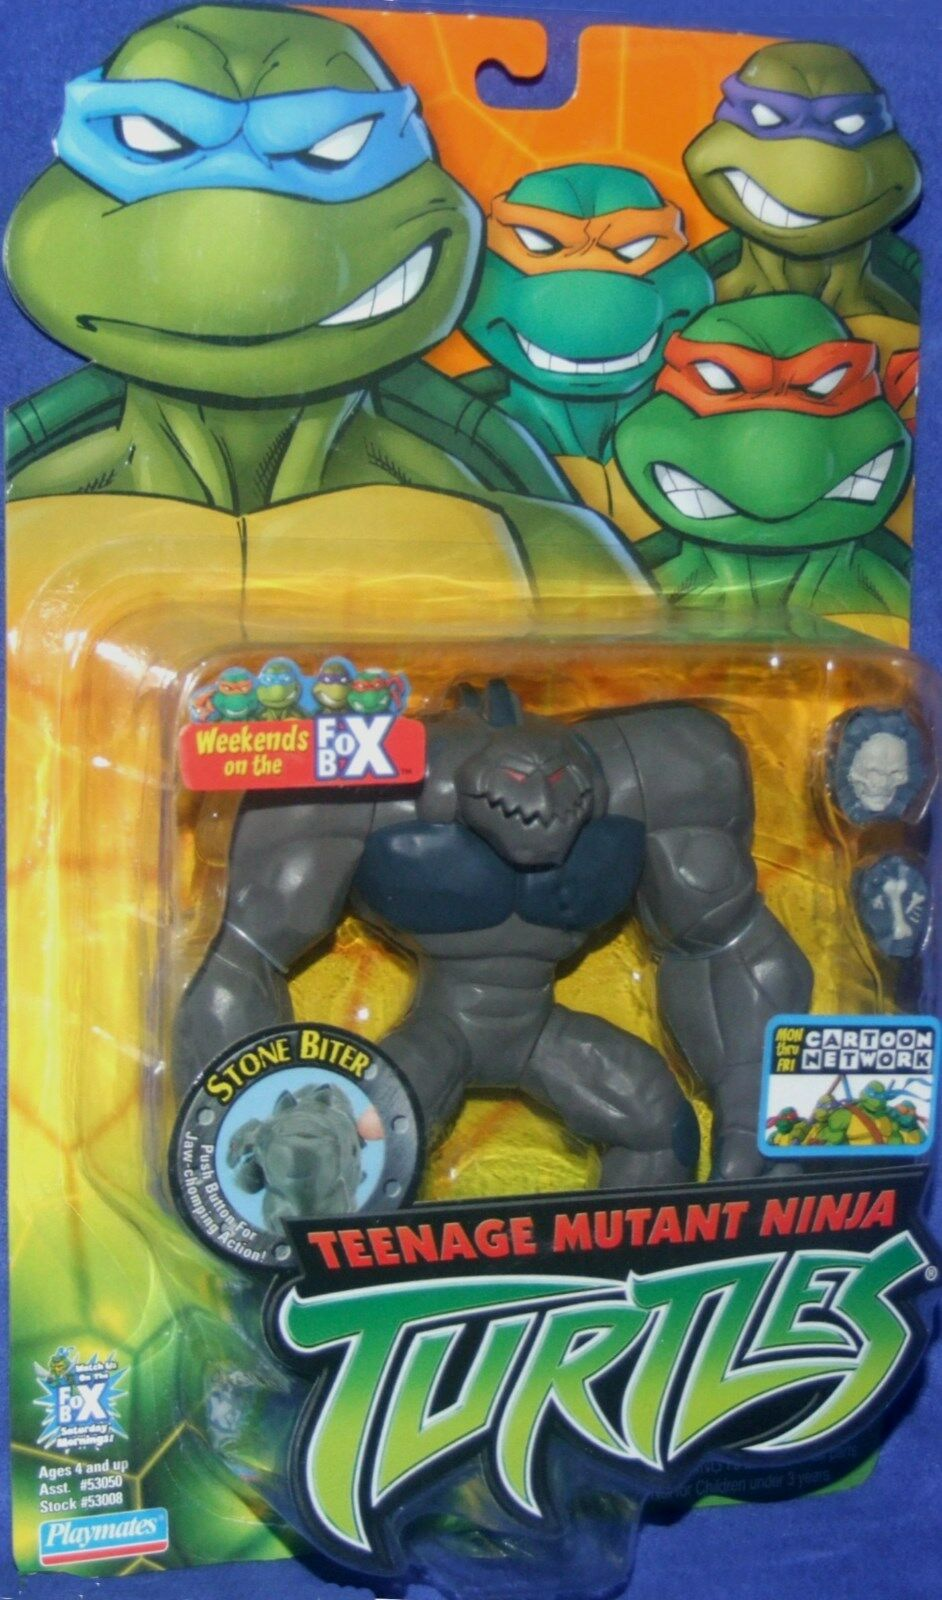 Teenage Mutant Ninja Turtles 5  Stone Biter New Factory Sealed Playmate 2004